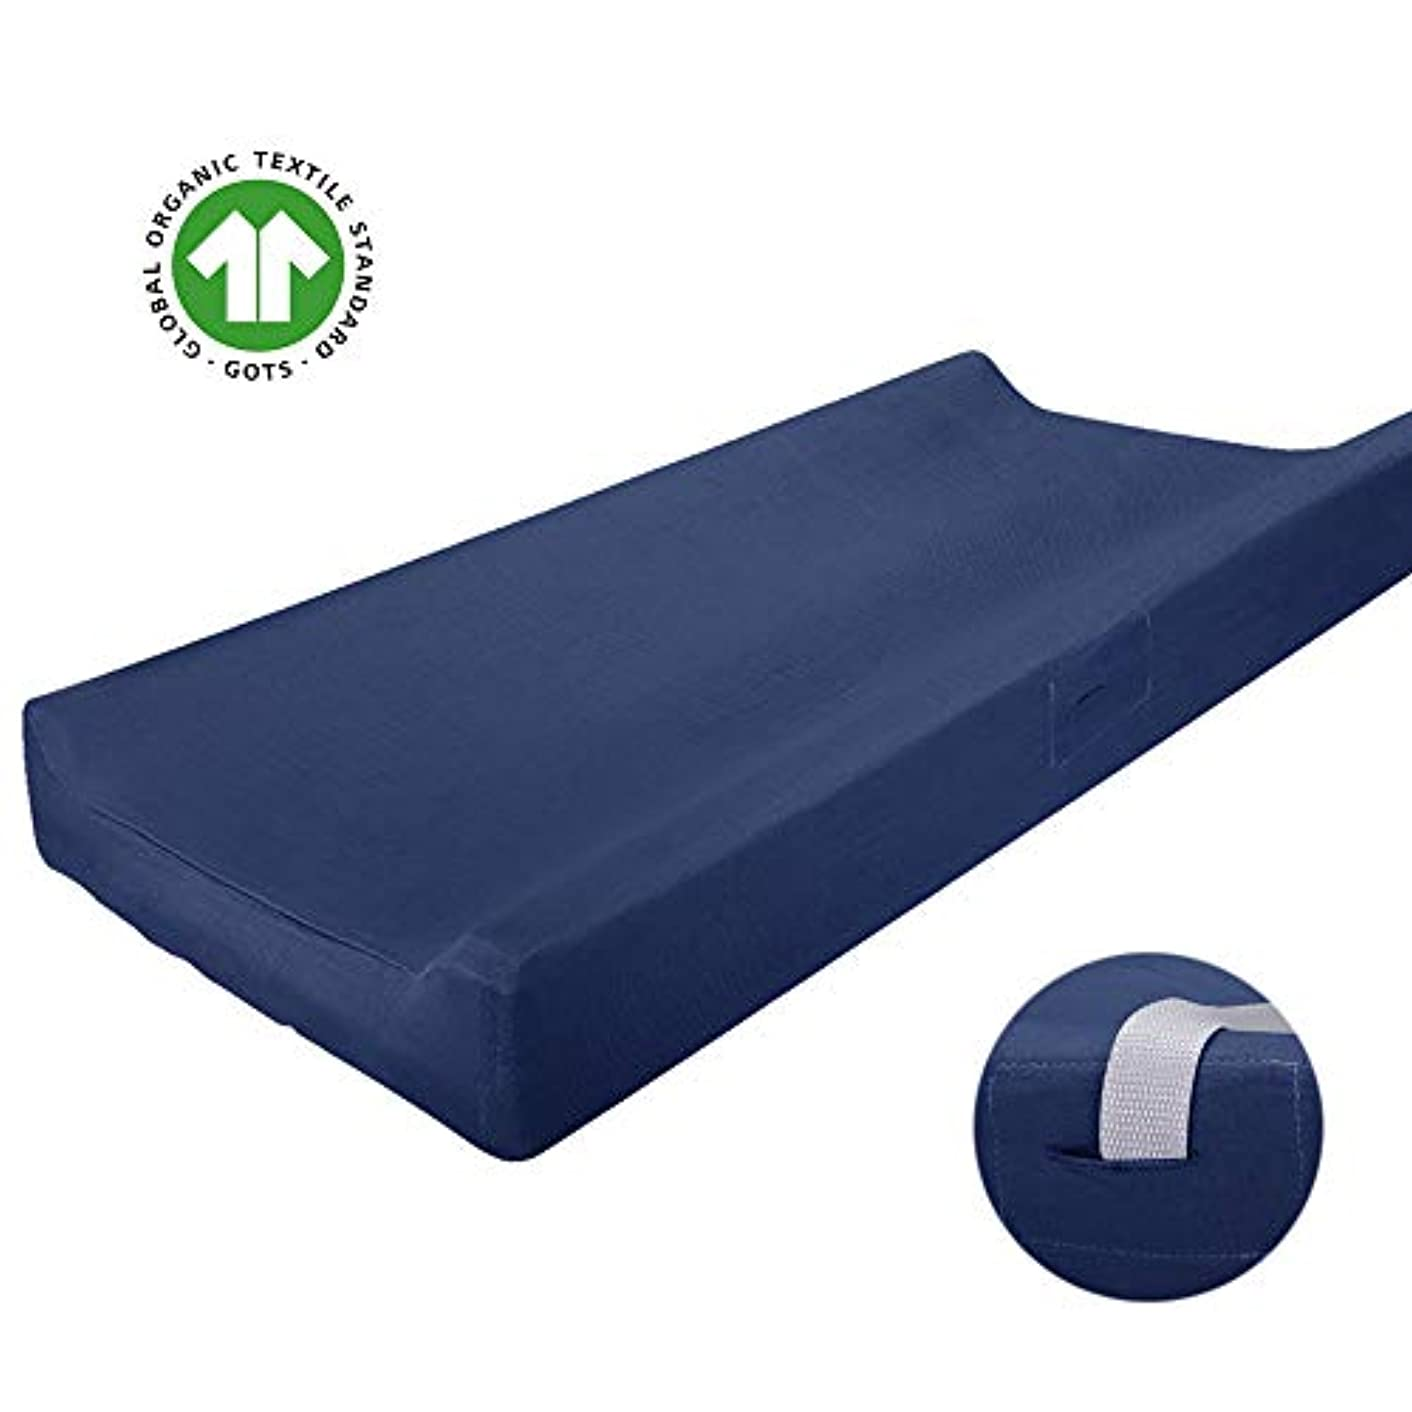 Mueen Life Changing Pad Cover - Soft&Stretchy Change Table Sheet Cradle Sheet for Boy Girl, 100% Organic Cotton, Fitted 32'' x 16'' Standard or Contoured Changing Pad (1 Pack - Navy)